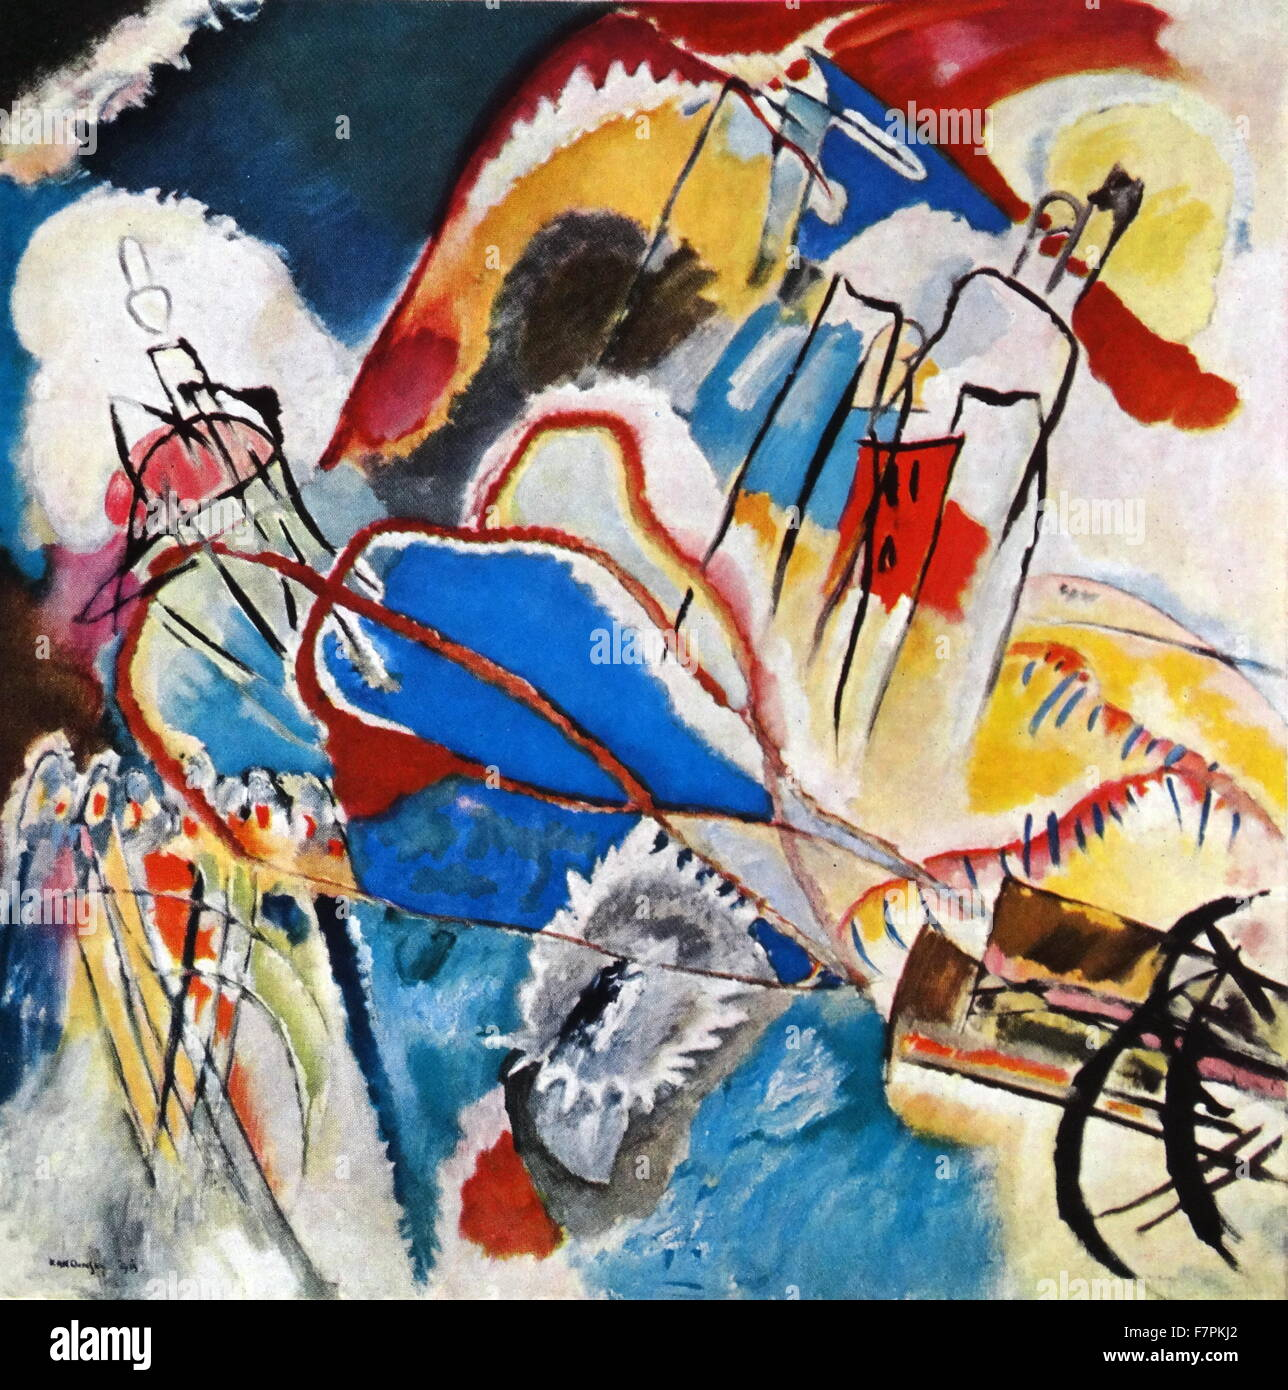 Painting titled 'Improvisation No. 30' by Wassily Kandinsky (1866-1944) Russian painter and art theorist. - Stock Image